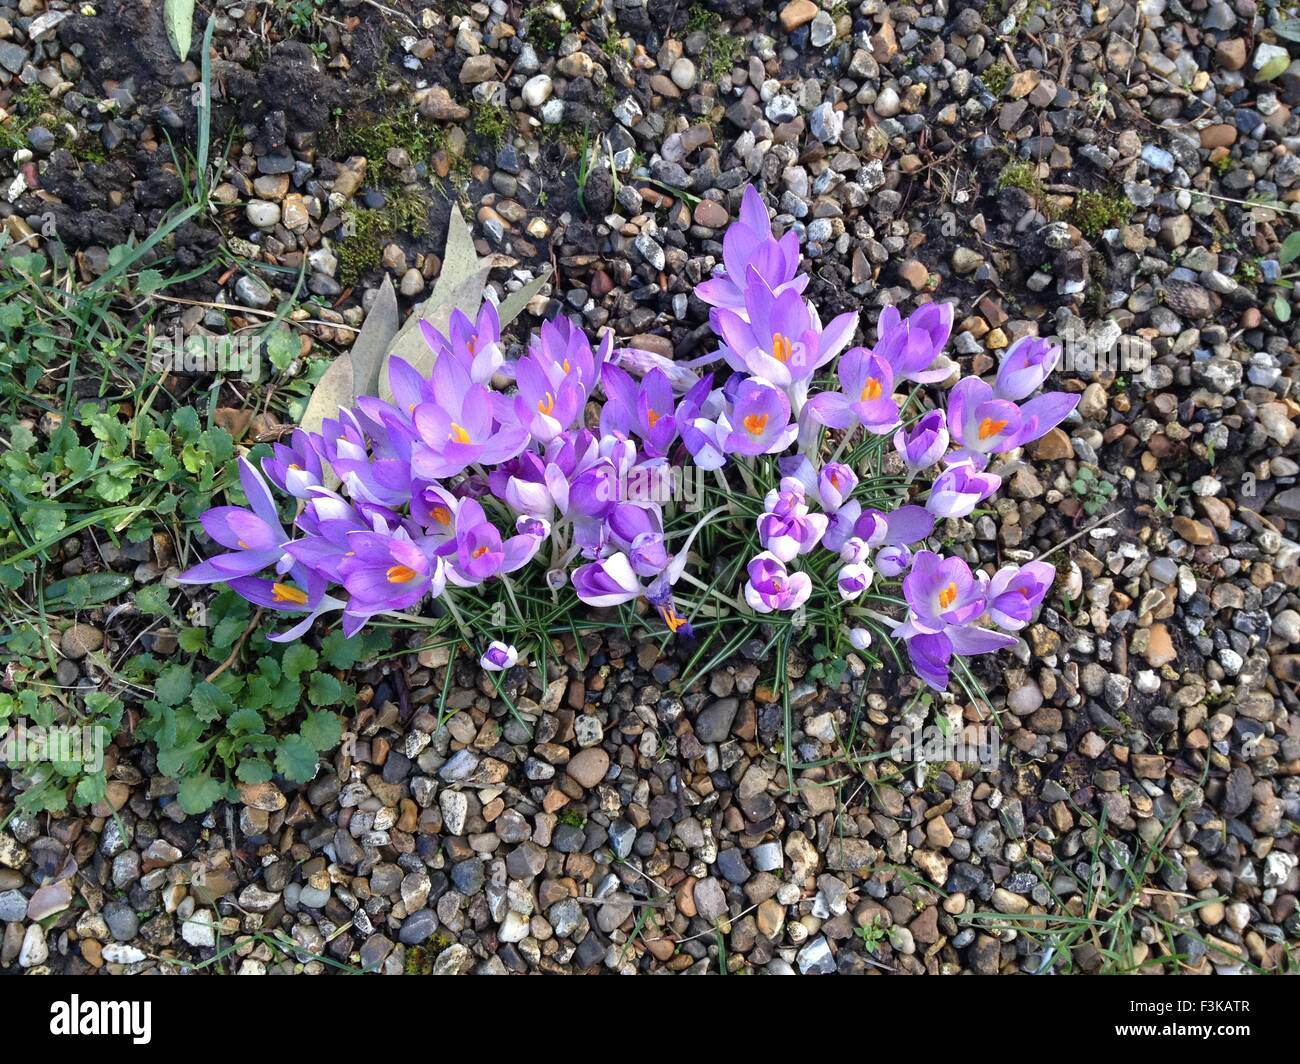 A cluster of purple crocuses sprouting through gravel - Stock Image